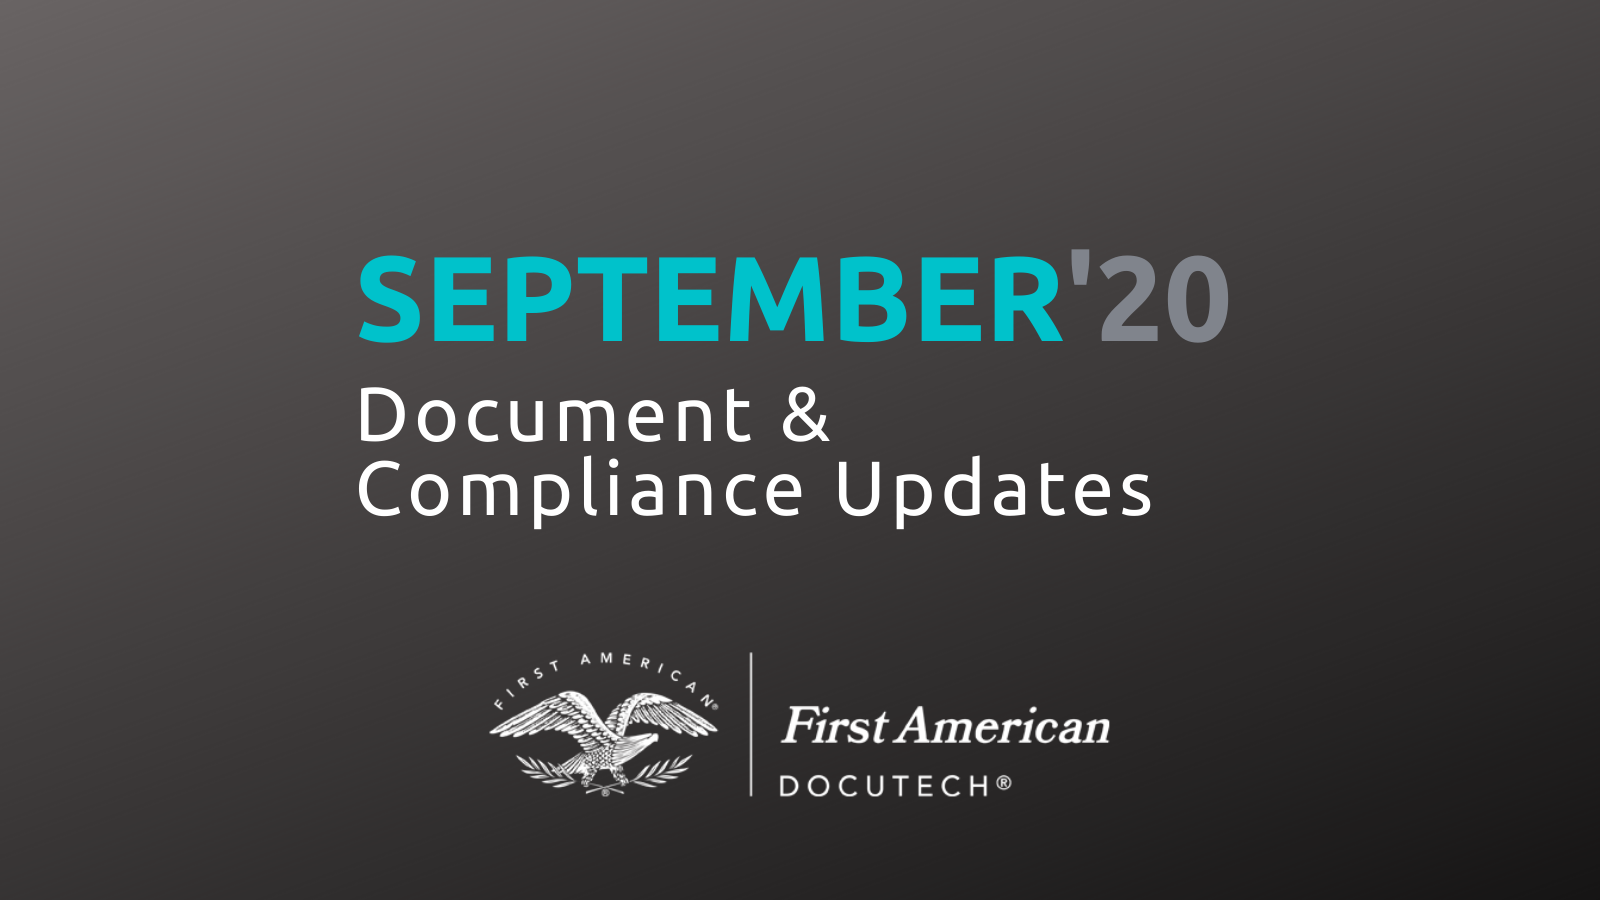 September 2020 Document and Compliance Updates